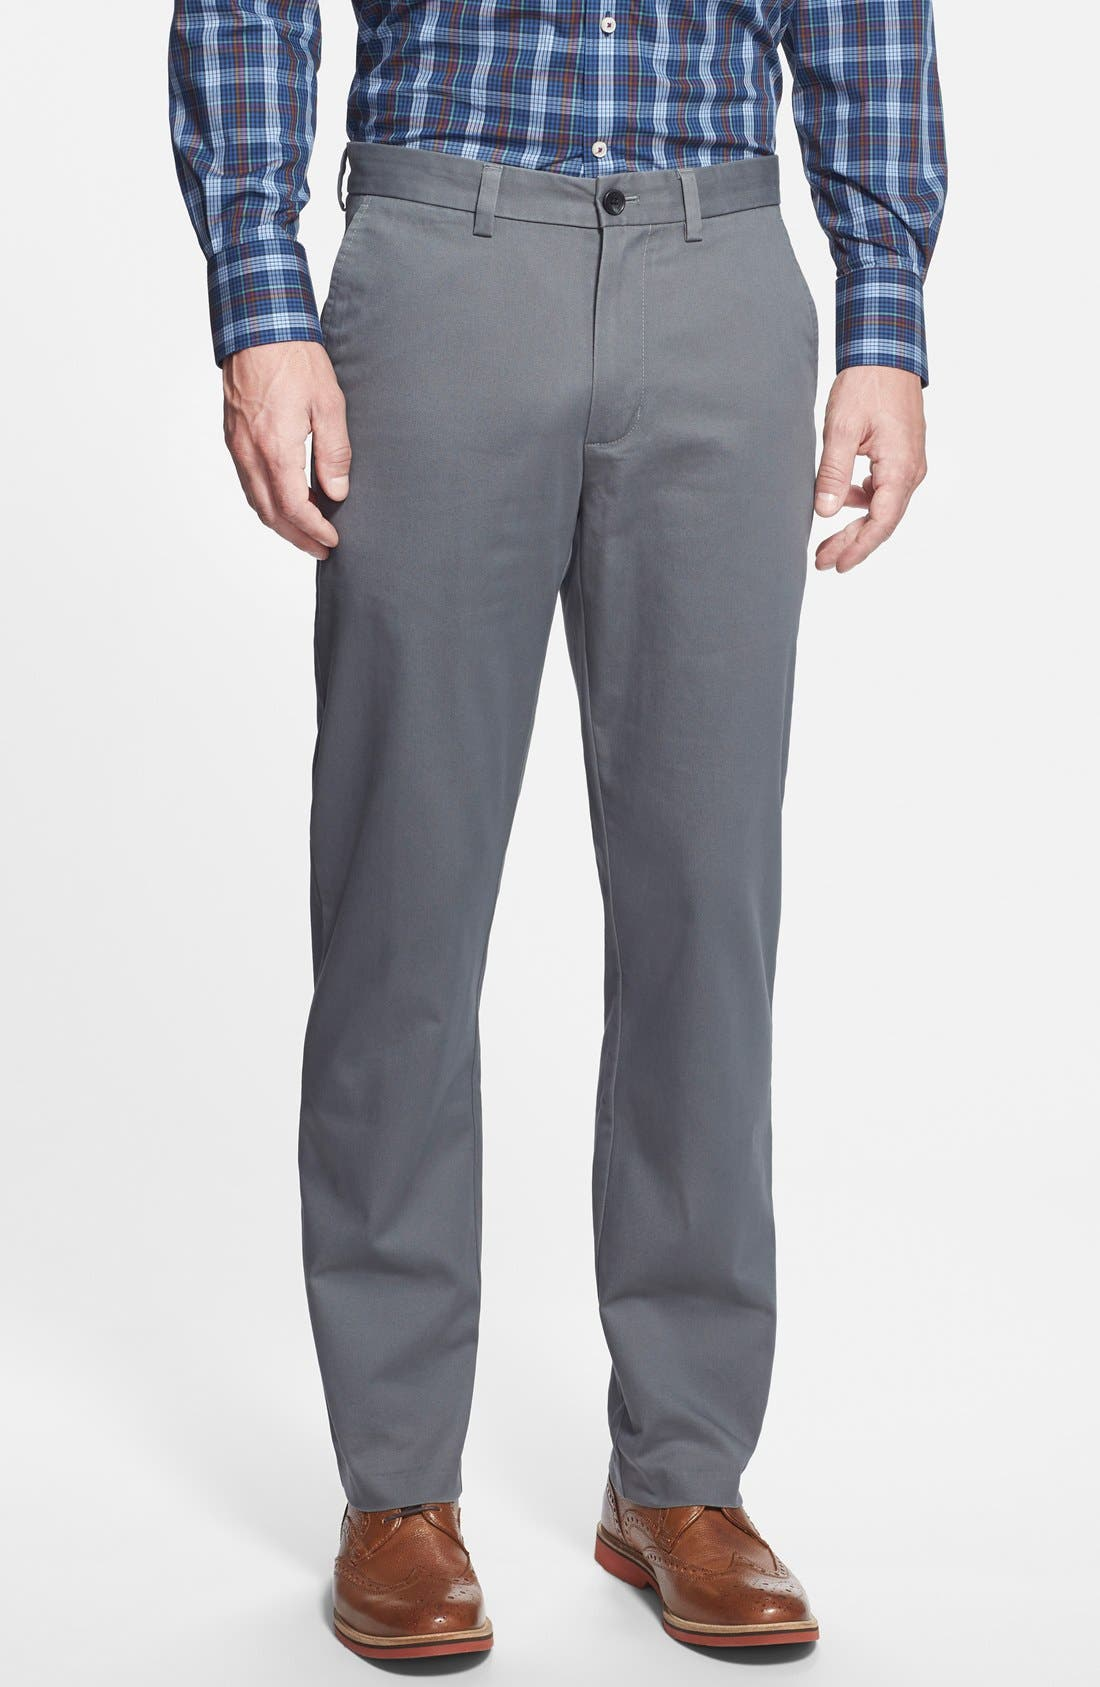 Main Image - Nordstrom Men's Shop Wrinkle Free Straight Leg Chinos